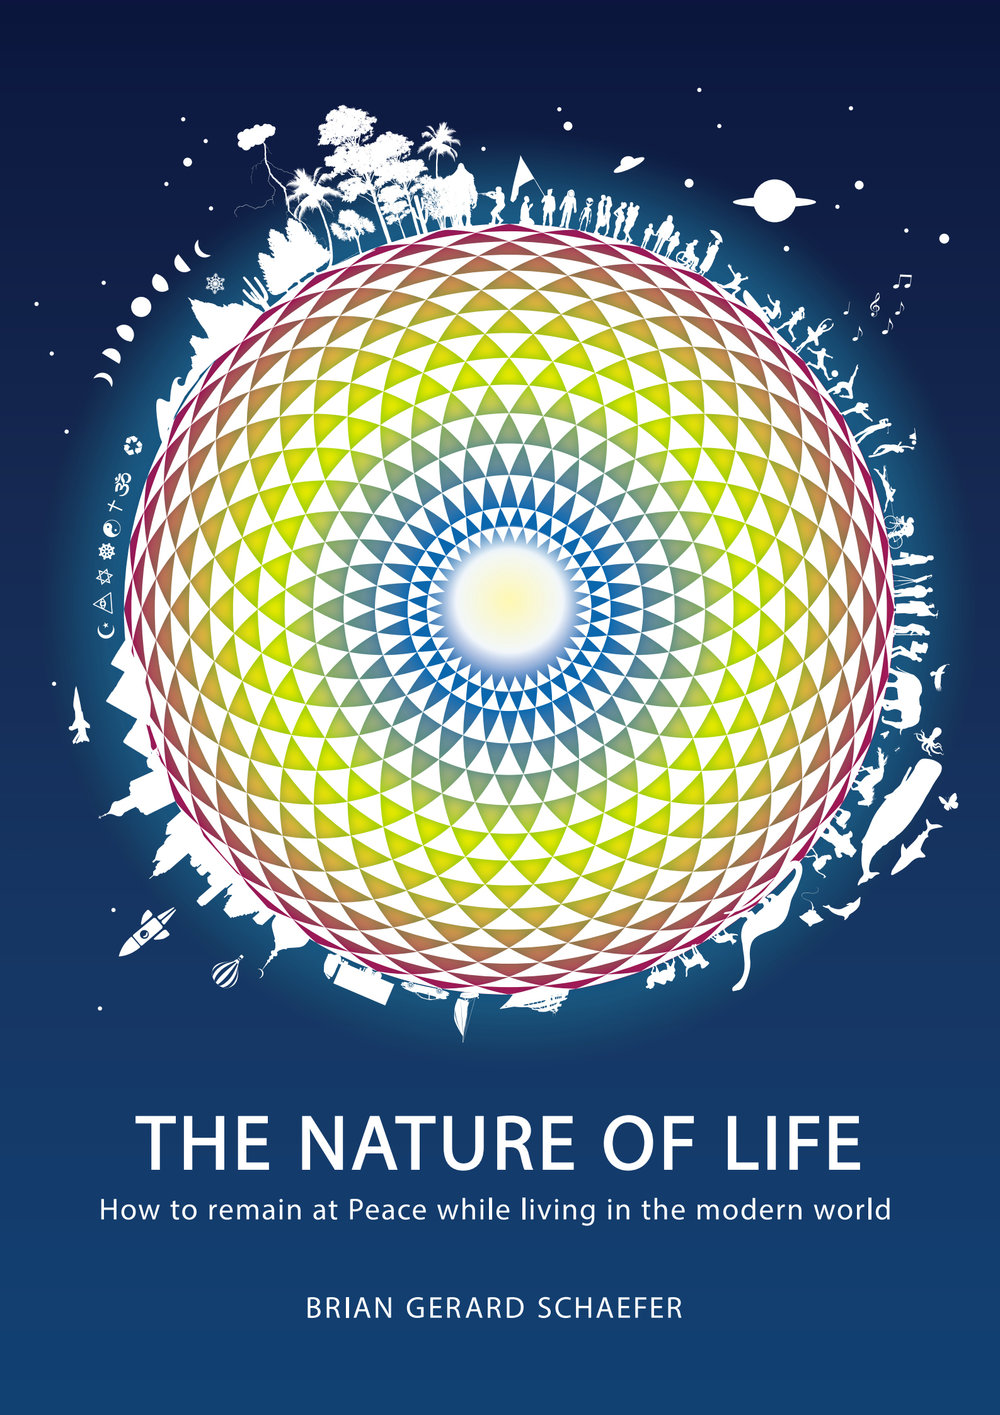 THE NATURE OF LIFE COVER JPG.jpg